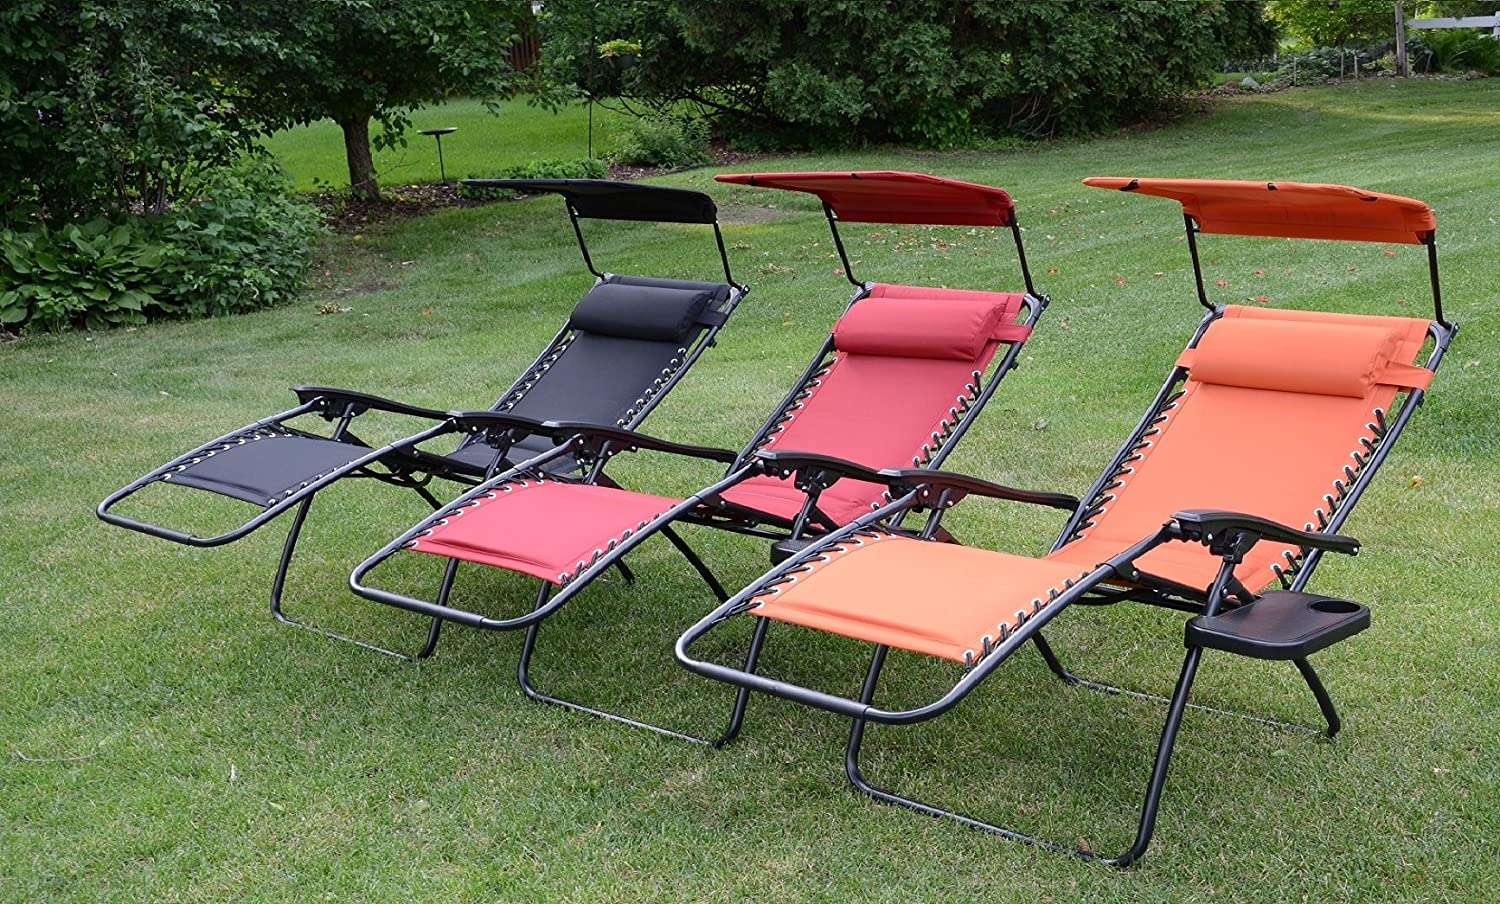 Merveilleux Amazon.com : Deluxe Padded Zero Gravity Chair With Canopy + Tray   Sweet  Tangerine : Garden U0026 Outdoor